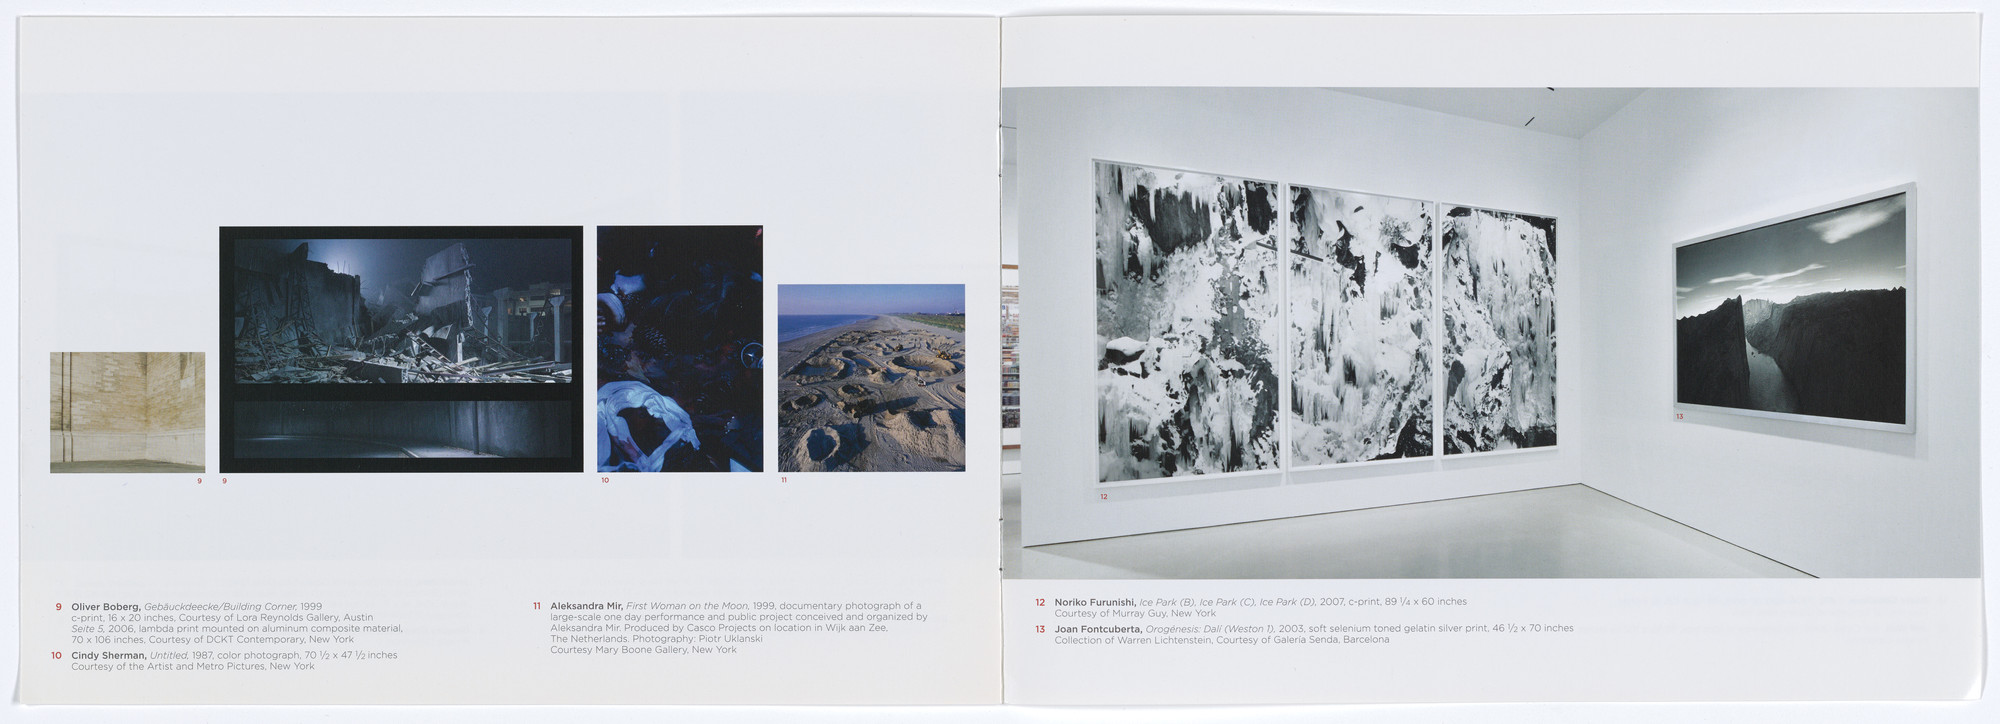 Aleksandra Mir. Brochure for Vague Terrain: Analogues of Place in Contemporary Photography, The FLAG Art Foundation, May 8–September 1, 2009. 2009